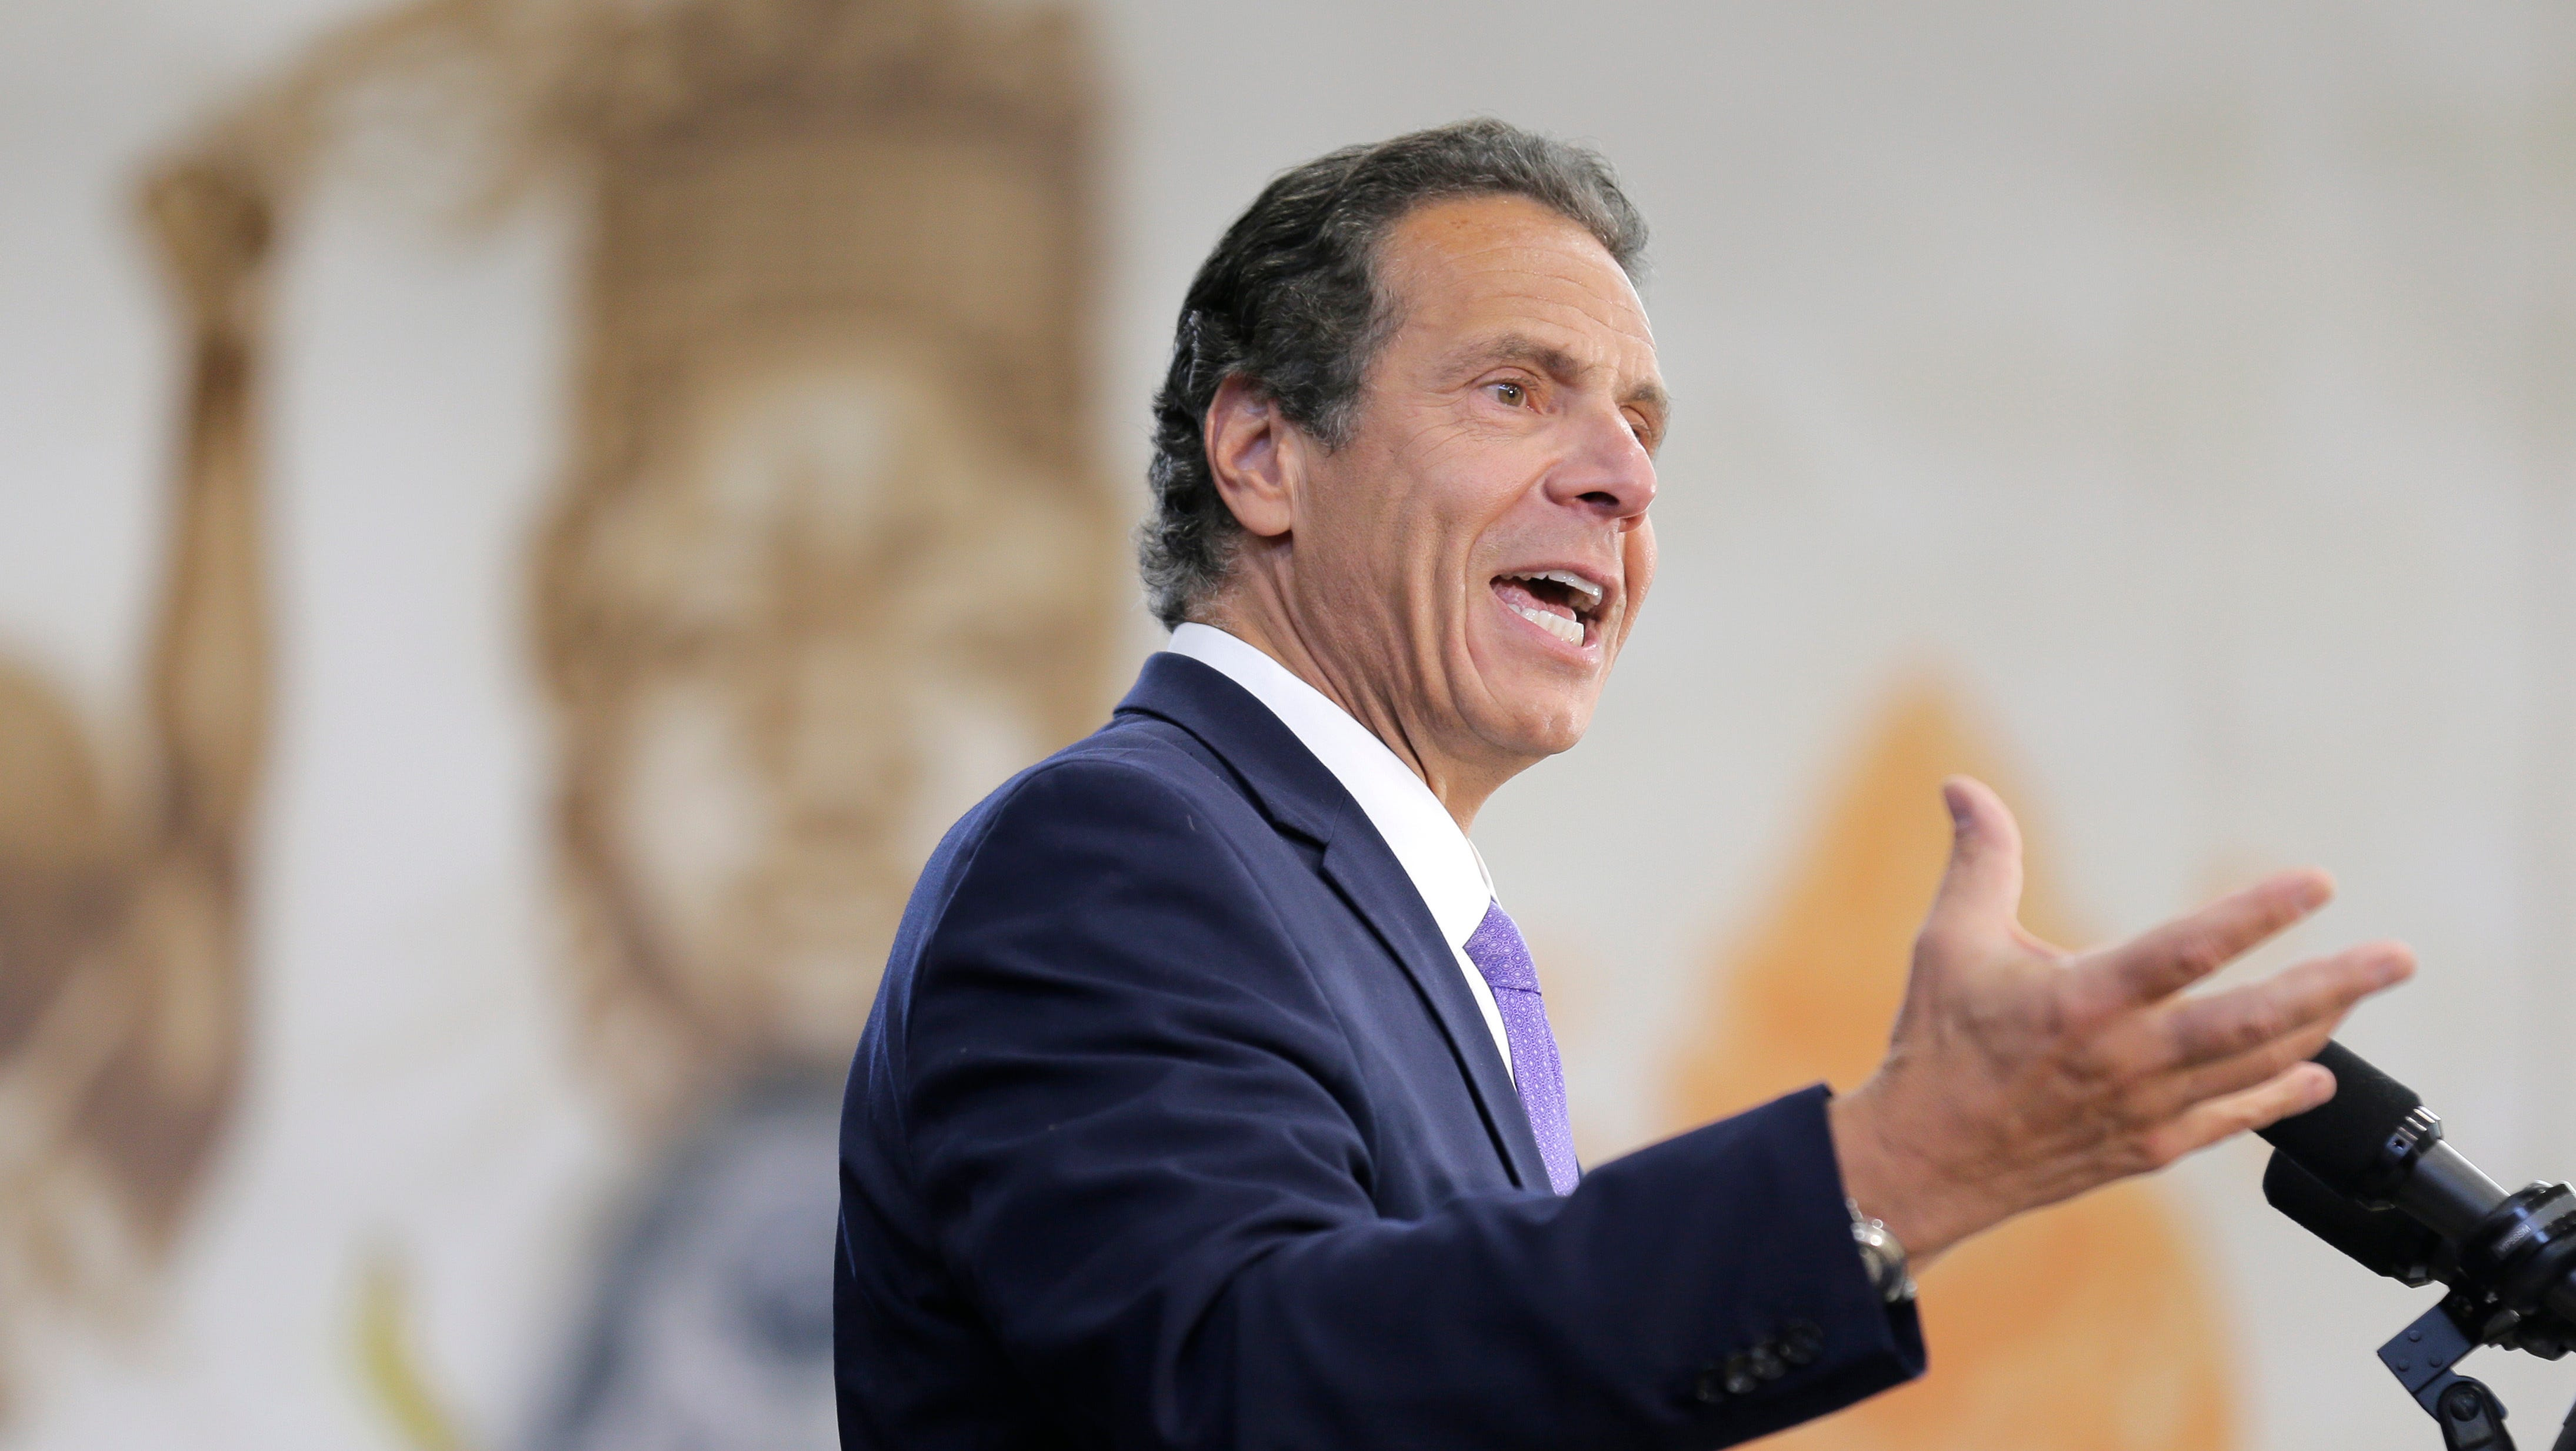 With less than a month to go before Election Day, New York Gov. Andrew Cuomo has yet to agree to a debate.